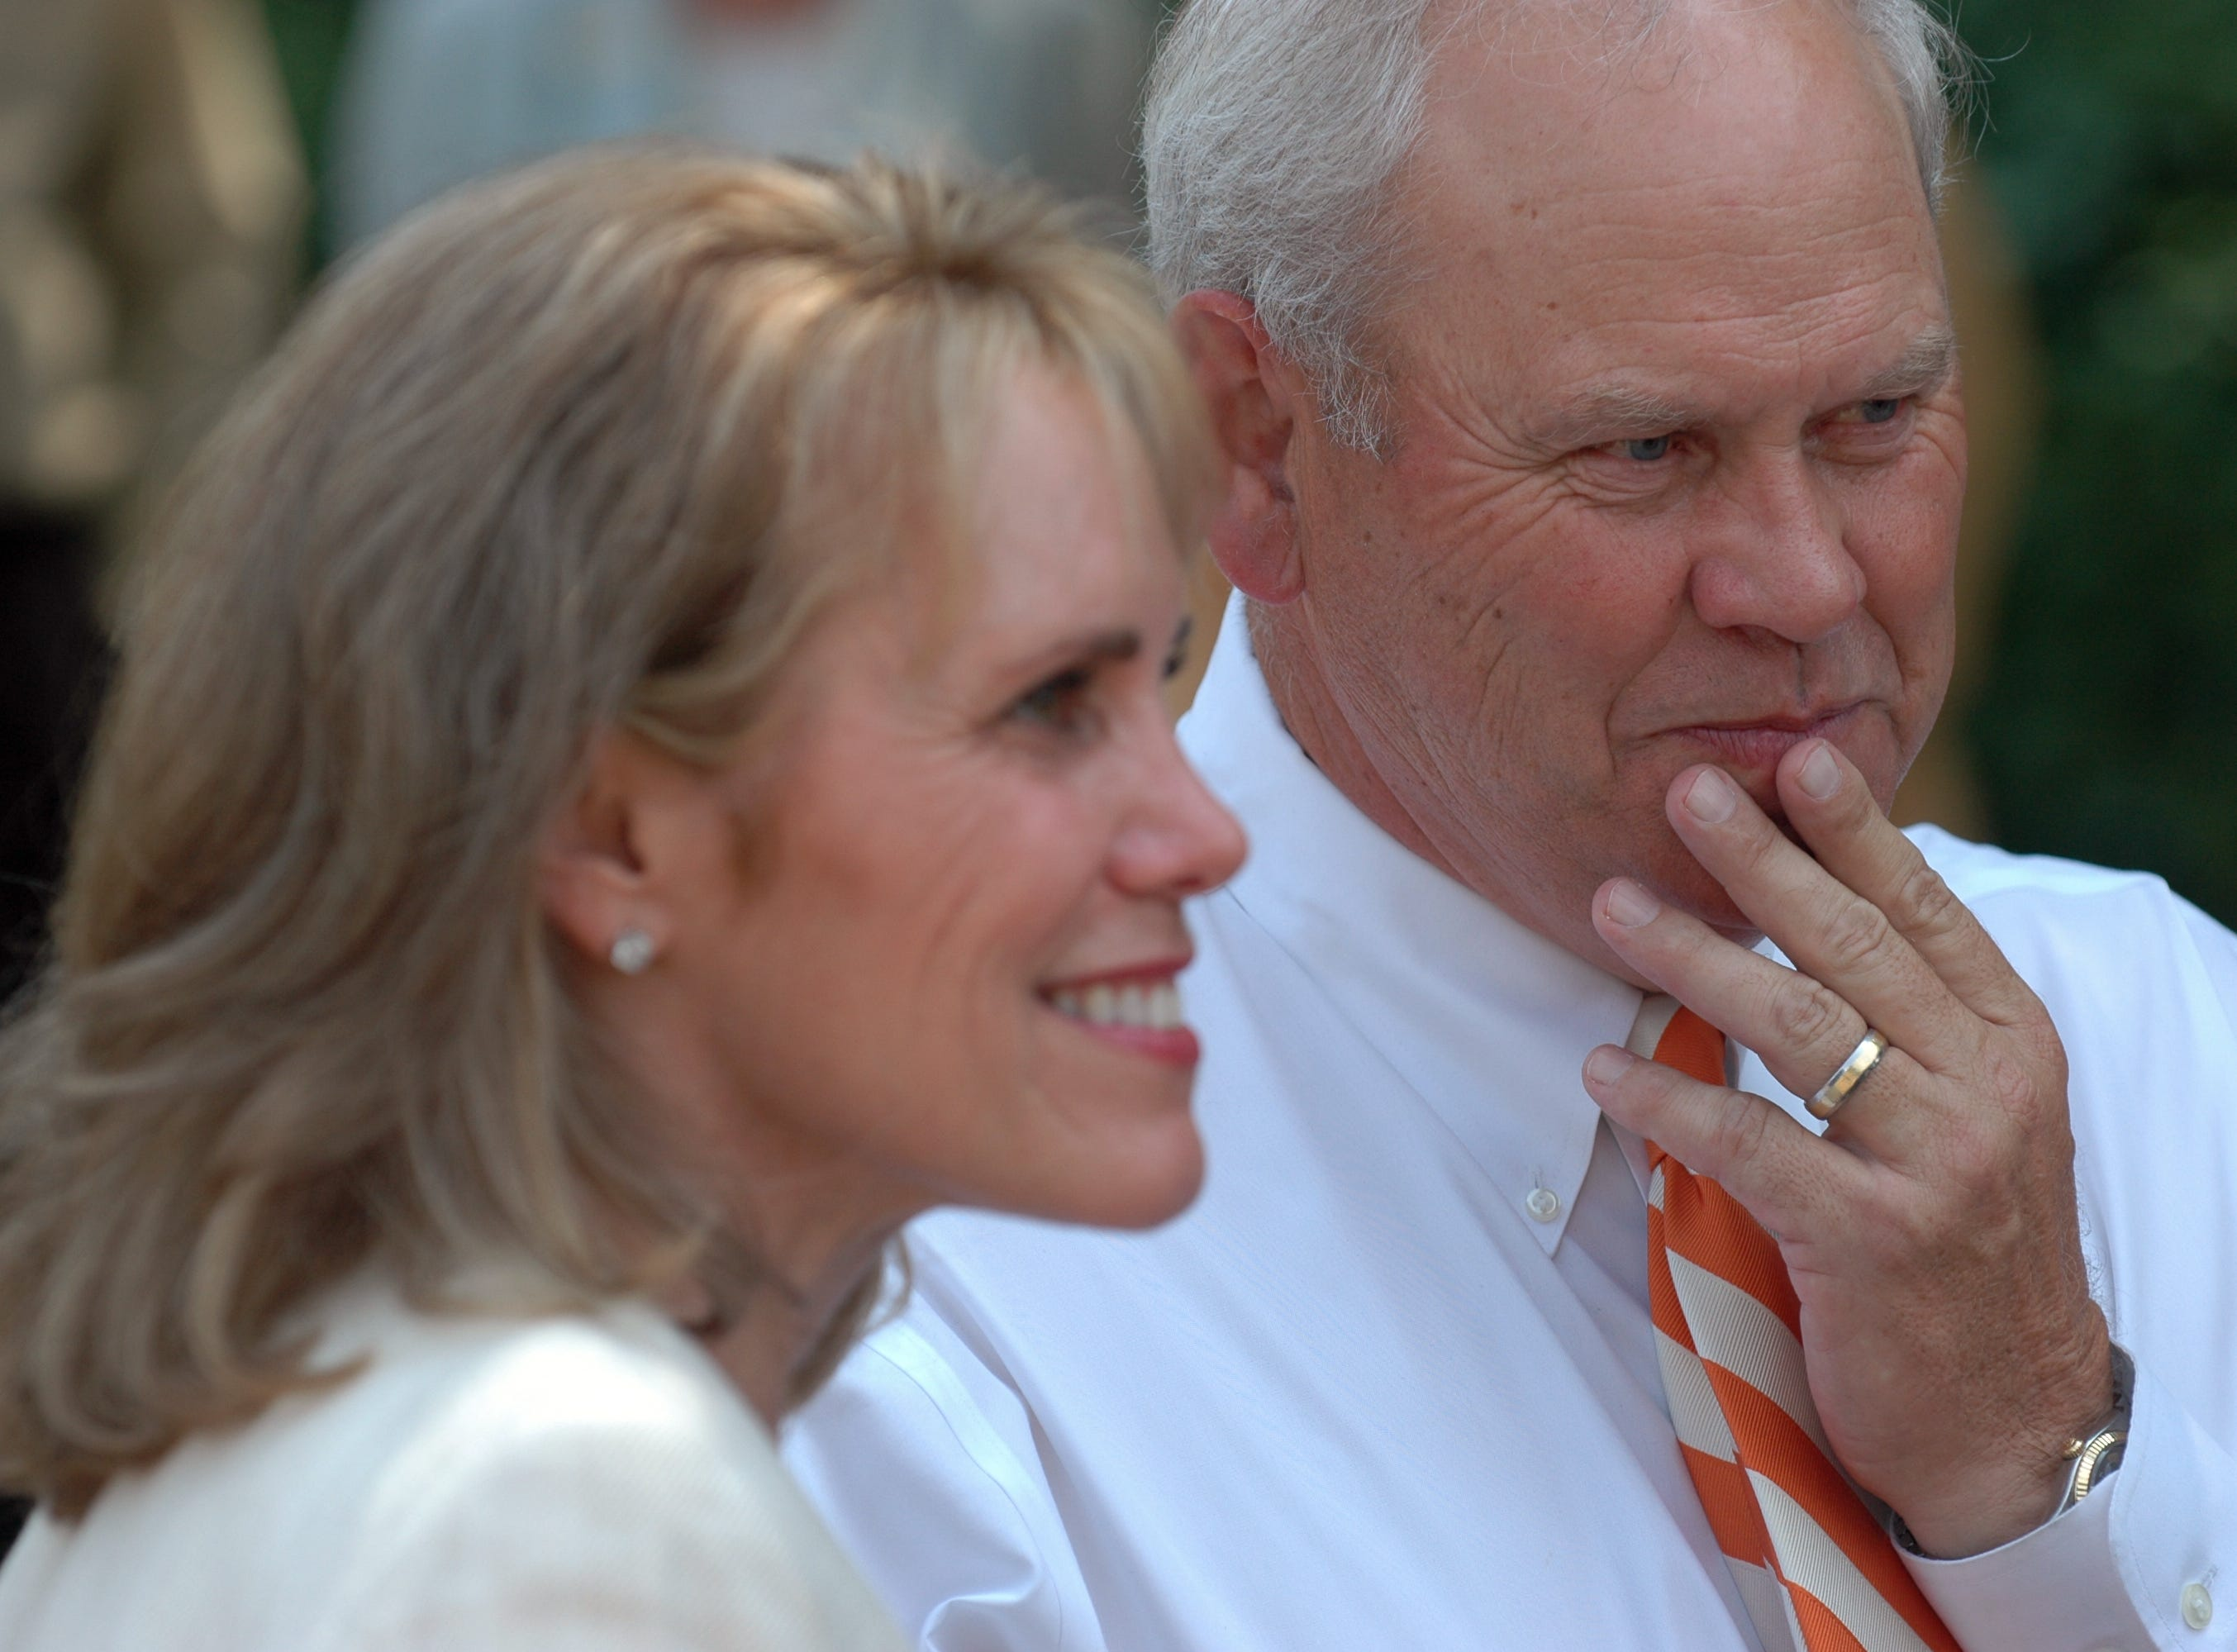 News Sentinel Archives: University of Tennessee Head football coach Phillip Fulmer and his wife Vicky Fulmer have committed to a $1 million gift to the University of Tennessee. The announcement is made at Circle Park during a press conference.   Tuesday, August 28, 2007 Saul Young/News Sentinel